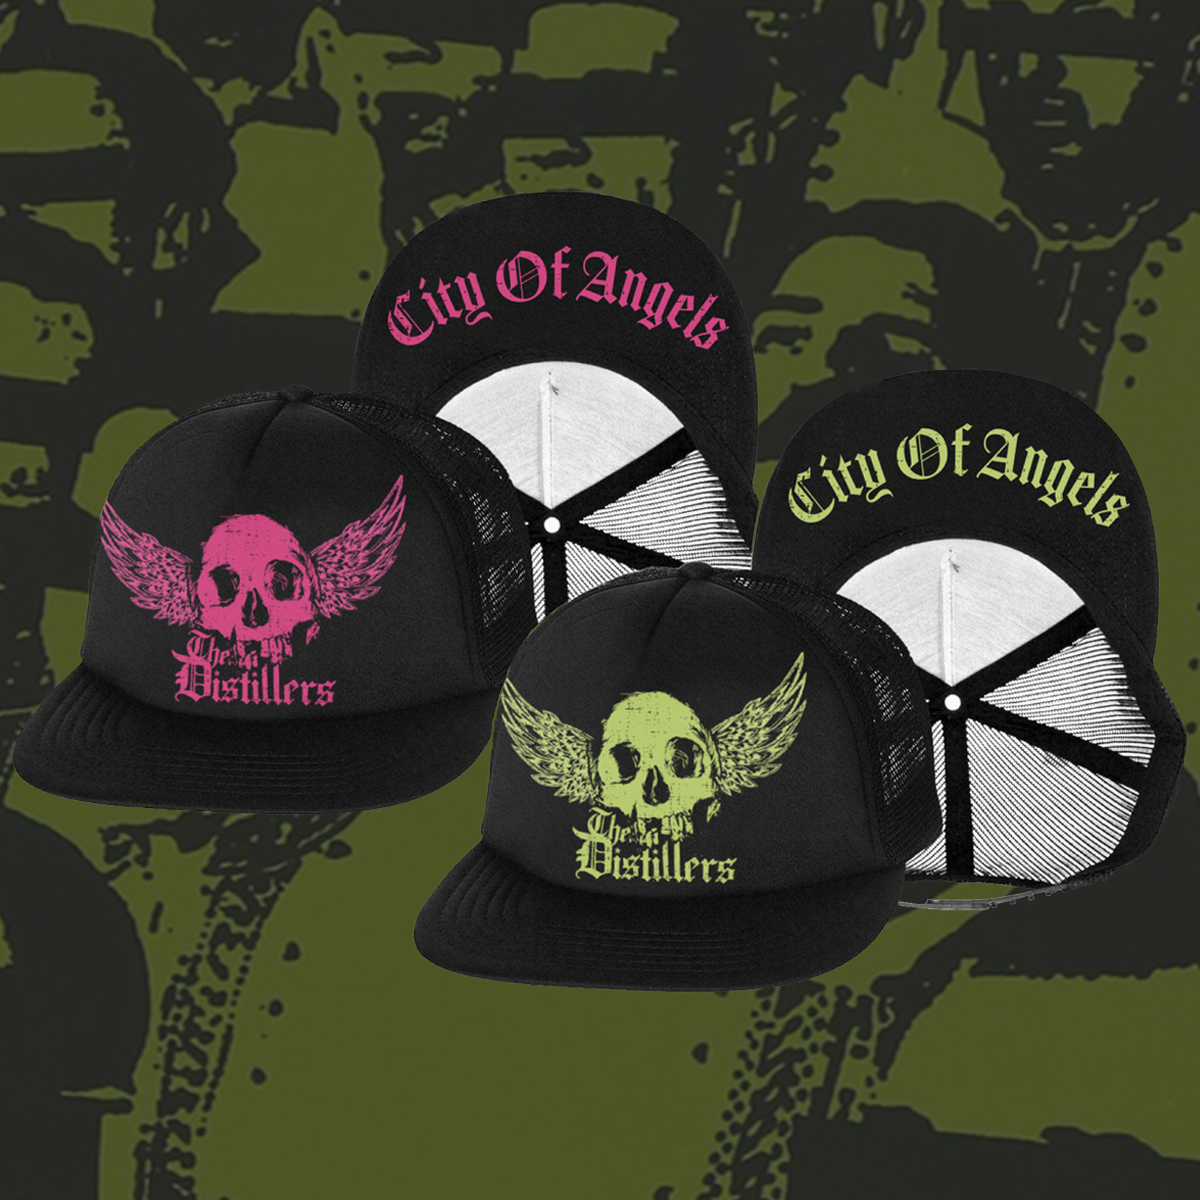 City of Angels Trucker (SOLD OUT)